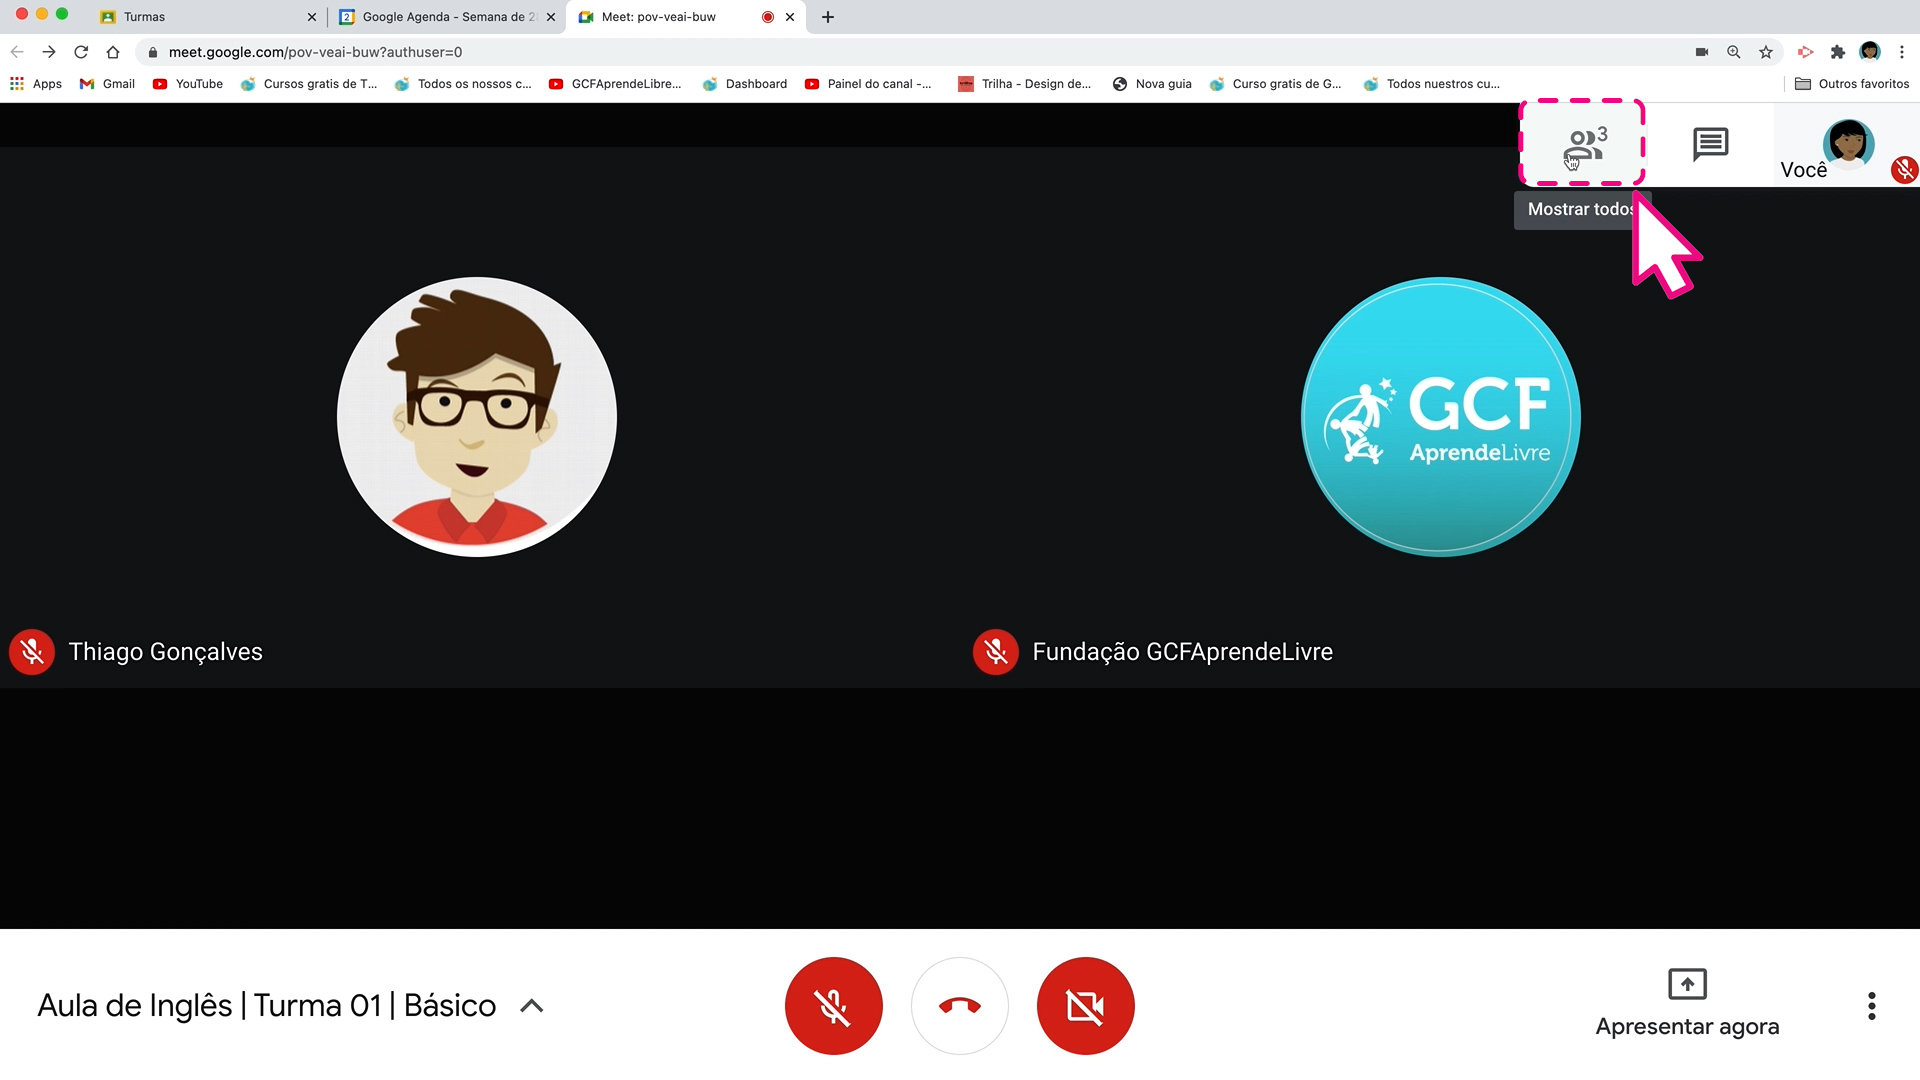 Como visualizar participantes de uma aula online do google meet